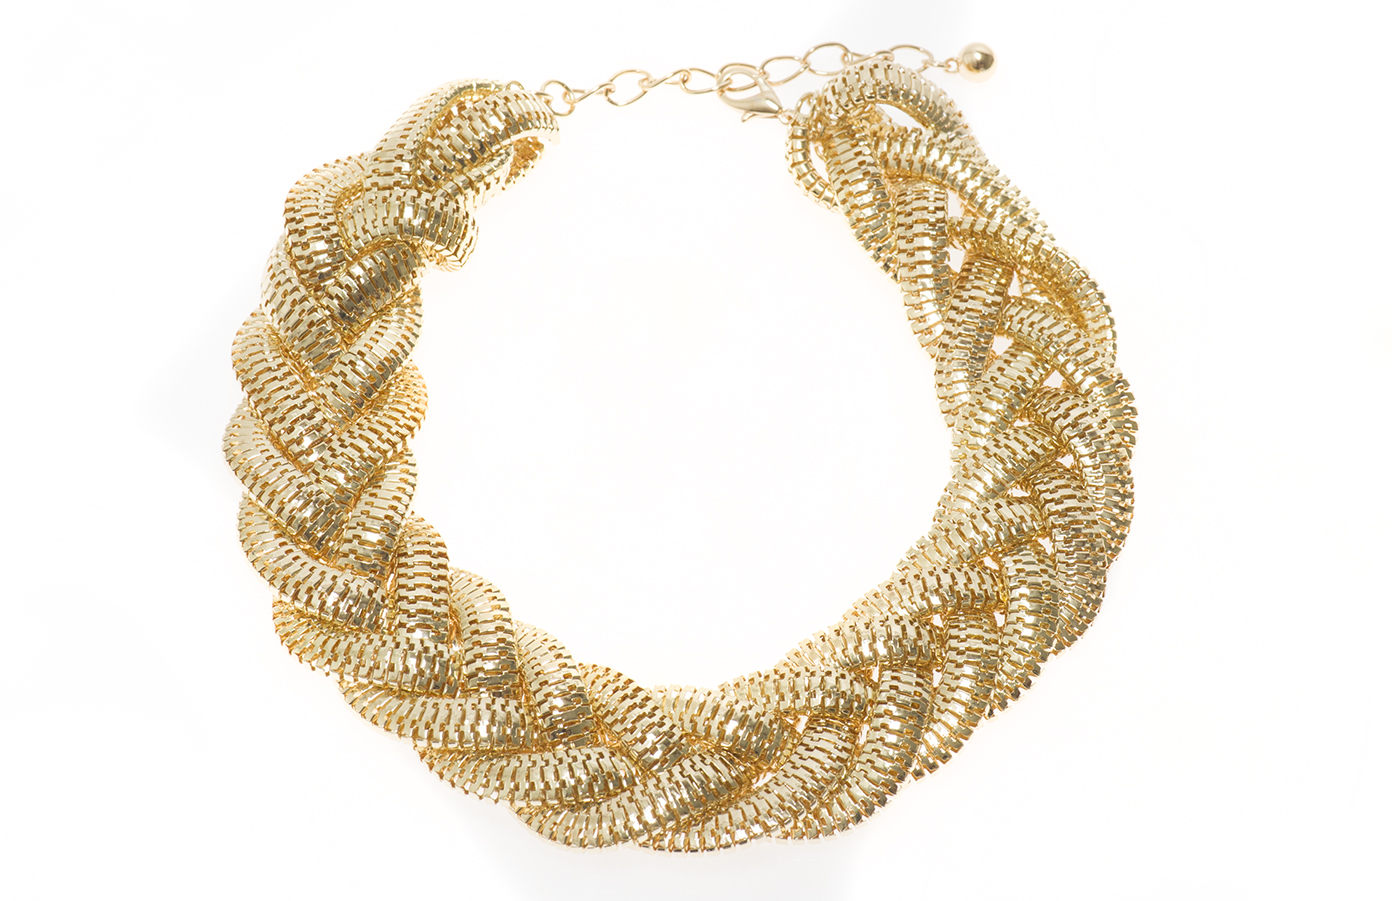 Neckless_Gold_ThickRope